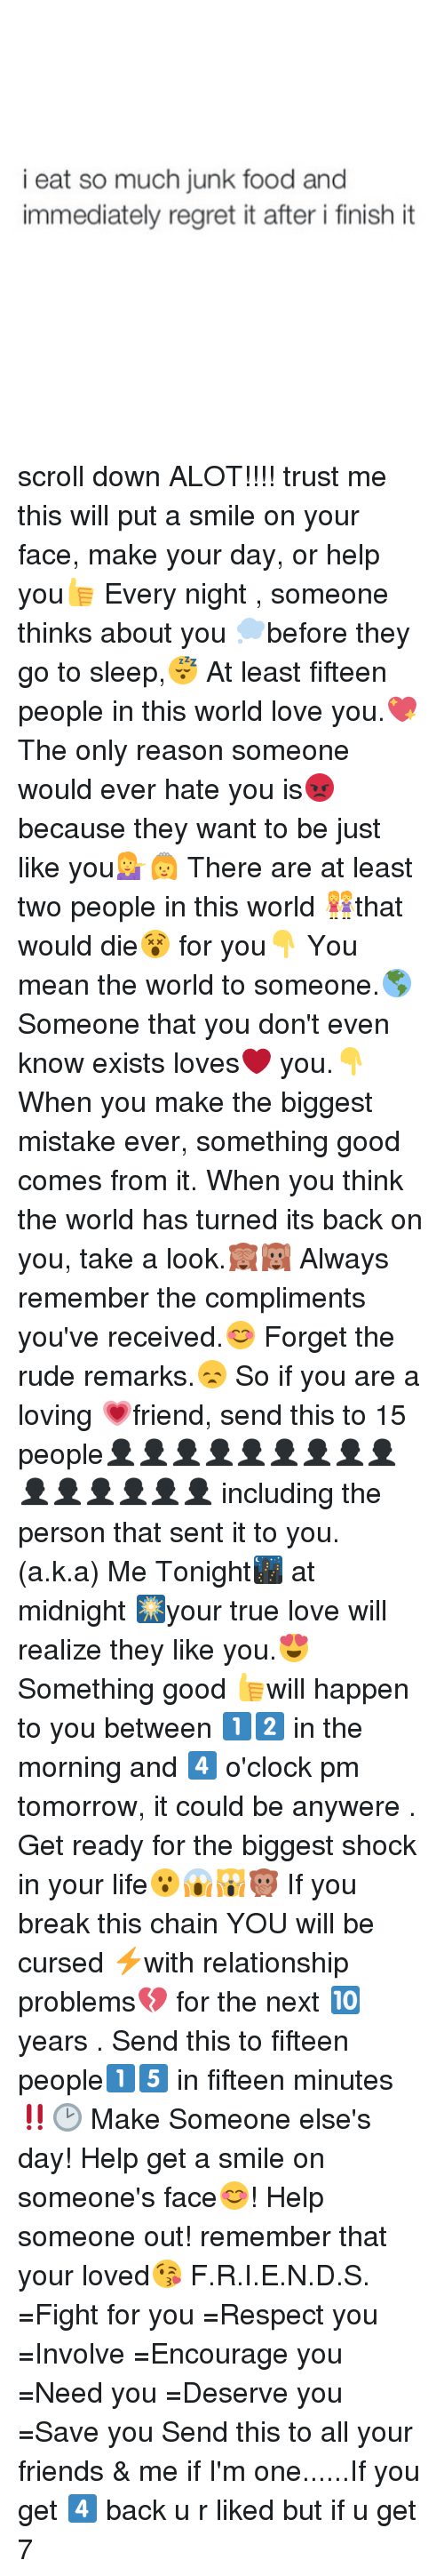 Immediate Regret: i eat so much junk food and  immediately regret it after i finish it scroll down ALOT!!!! trust me this will put a smile on your face, make your day, or help you👍 Every night , someone thinks about you 💭before they go to sleep,😴 At least fifteen people in this world love you.💖 The only reason someone would ever hate you is😡 because they want to be just like you💁👸 There are at least two people in this world 👭that would die😵 for you👇 You mean the world to someone.🌎 Someone that you don't even know exists loves❤️ you.👇 When you make the biggest mistake ever, something good comes from it. When you think the world has turned its back on you, take a look.🙈🙉 Always remember the compliments you've received.😊 Forget the rude remarks.😞 So if you are a loving 💗friend, send this to 15 people👤👤👤👤👤👤👤👤👤👤👤👤👤👤👤 including the person that sent it to you. (a.k.a) Me Tonight🌃 at midnight 🎆your true love will realize they like you.😍 Something good 👍will happen to you between 1⃣2⃣ in the morning and 4⃣ o'clock pm tomorrow, it could be anywere . Get ready for the biggest shock in your life😮😱🙀🙊 If you break this chain YOU will be cursed ⚡️with relationship problems💔 for the next 🔟 years . Send this to fifteen people1⃣5⃣ in fifteen minutes‼️🕑 Make Someone else's day! Help get a smile on someone's face😊! Help someone out! remember that your loved😘 F.R.I.E.N.D.S. =Fight for you =Respect you =Involve =Encourage you =Need you =Deserve you =Save you Send this to all your friends & me if I'm one......If you get 4⃣ back u r liked but if u get 7